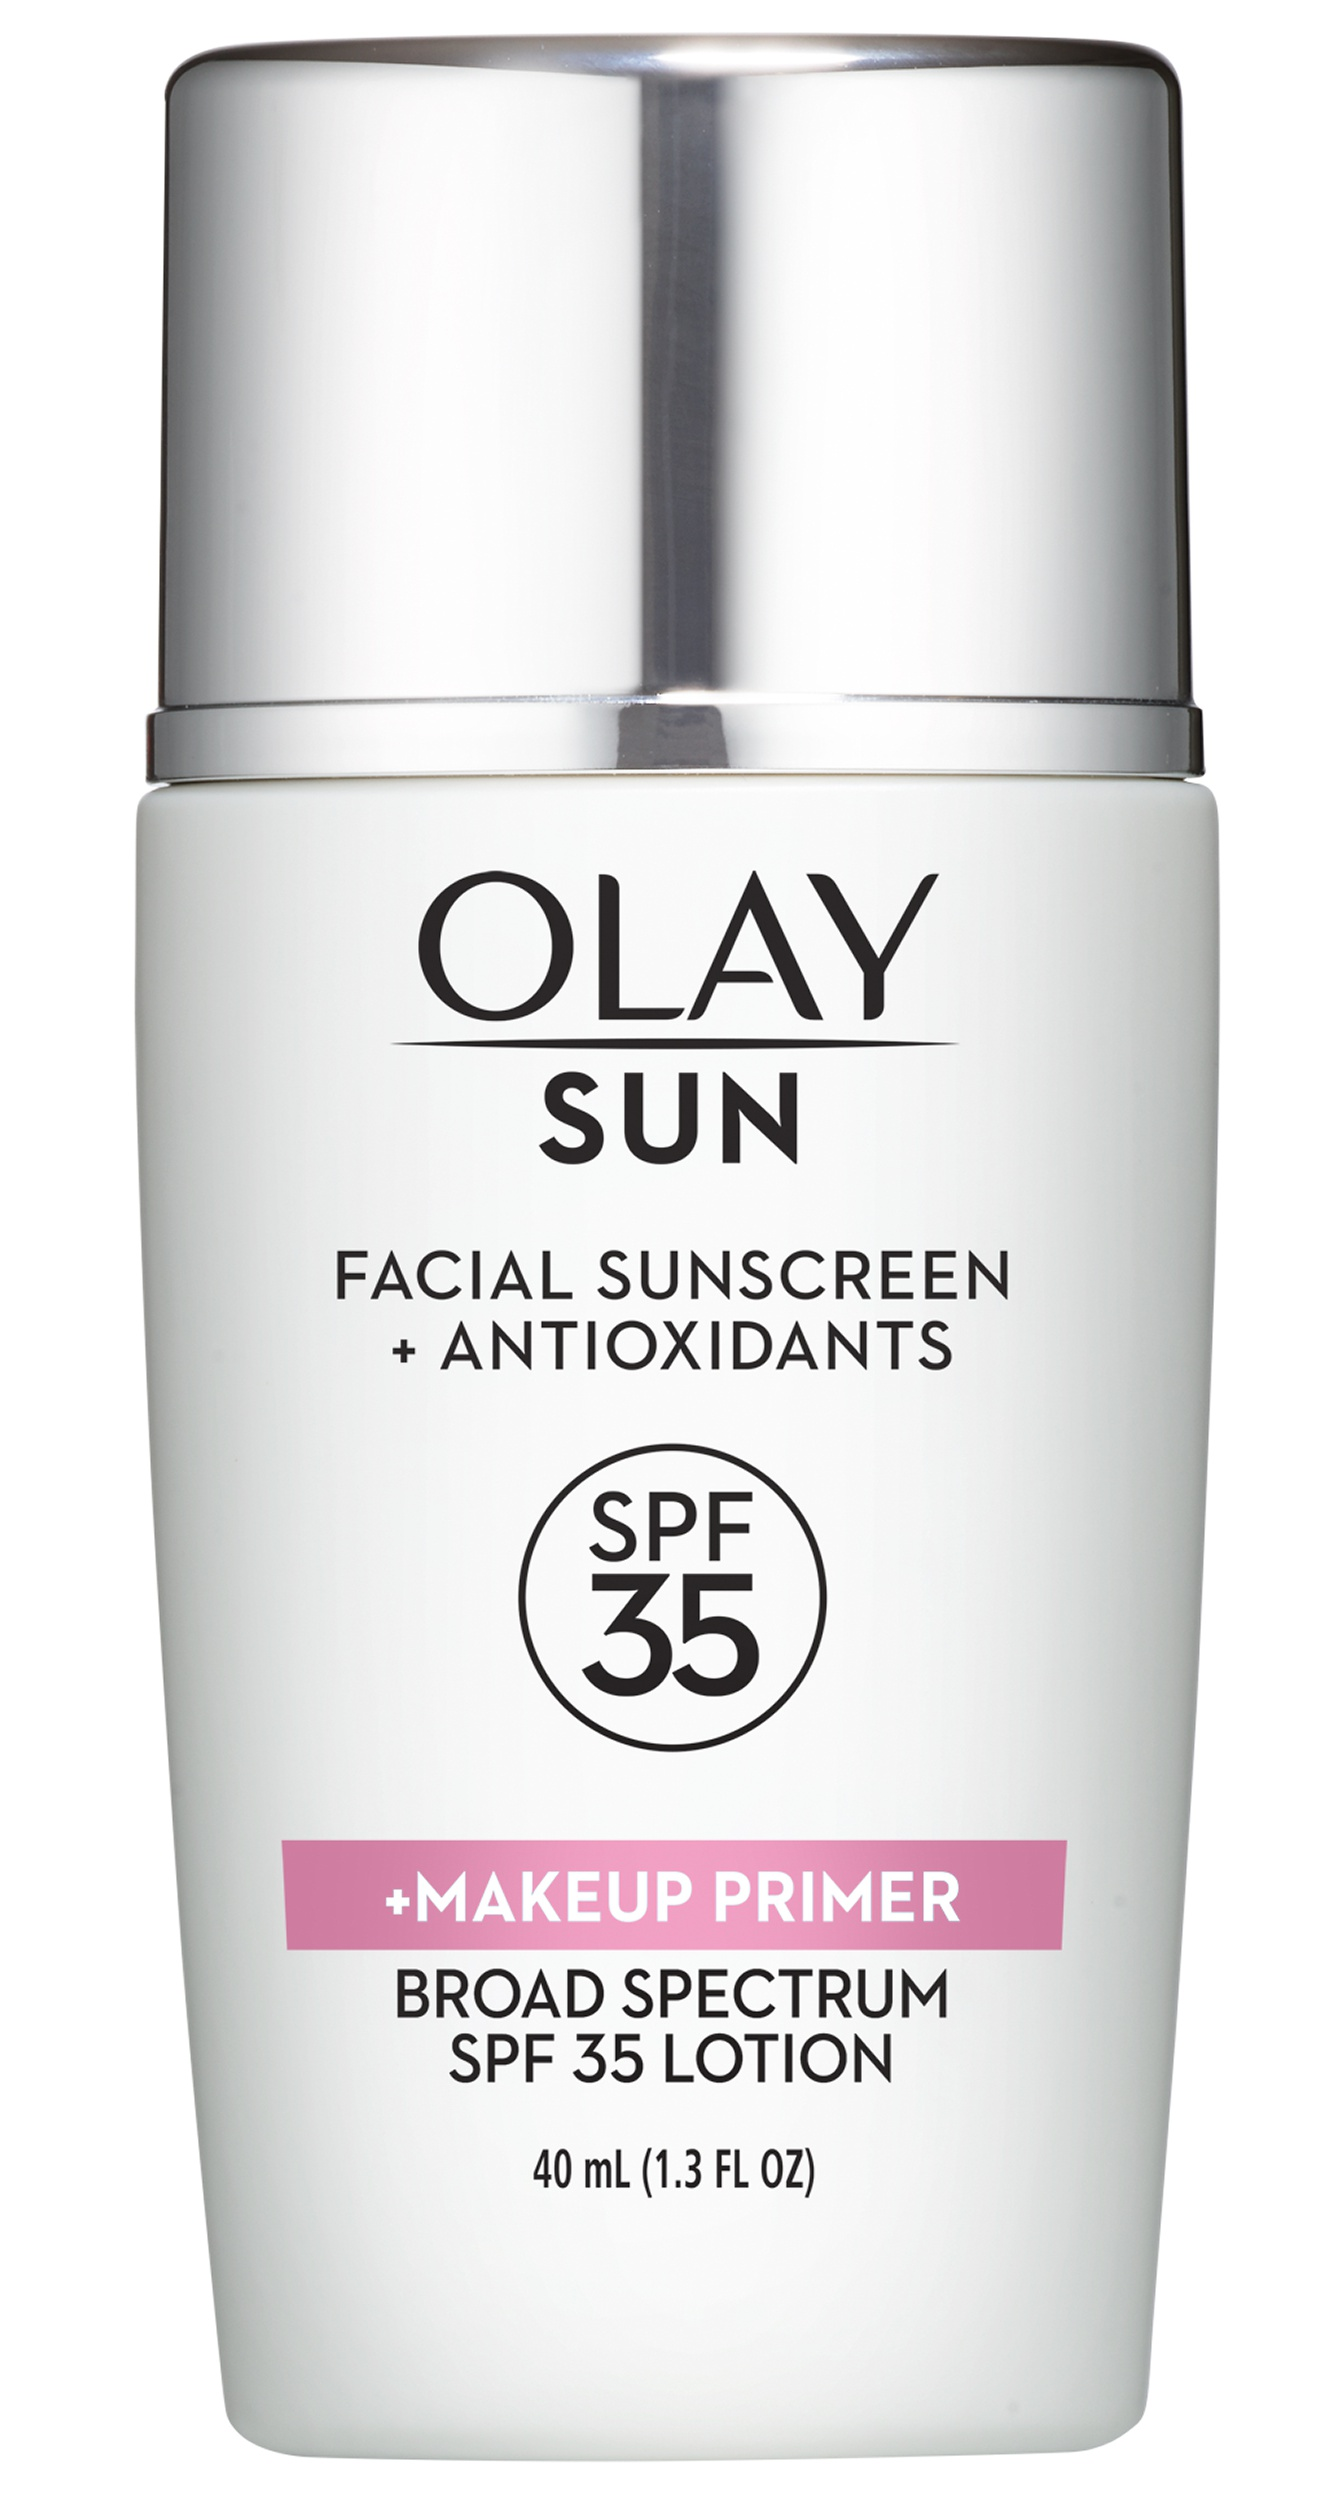 Olay Sun Face Sunscreen Serum + Makeup Primer Spf 35